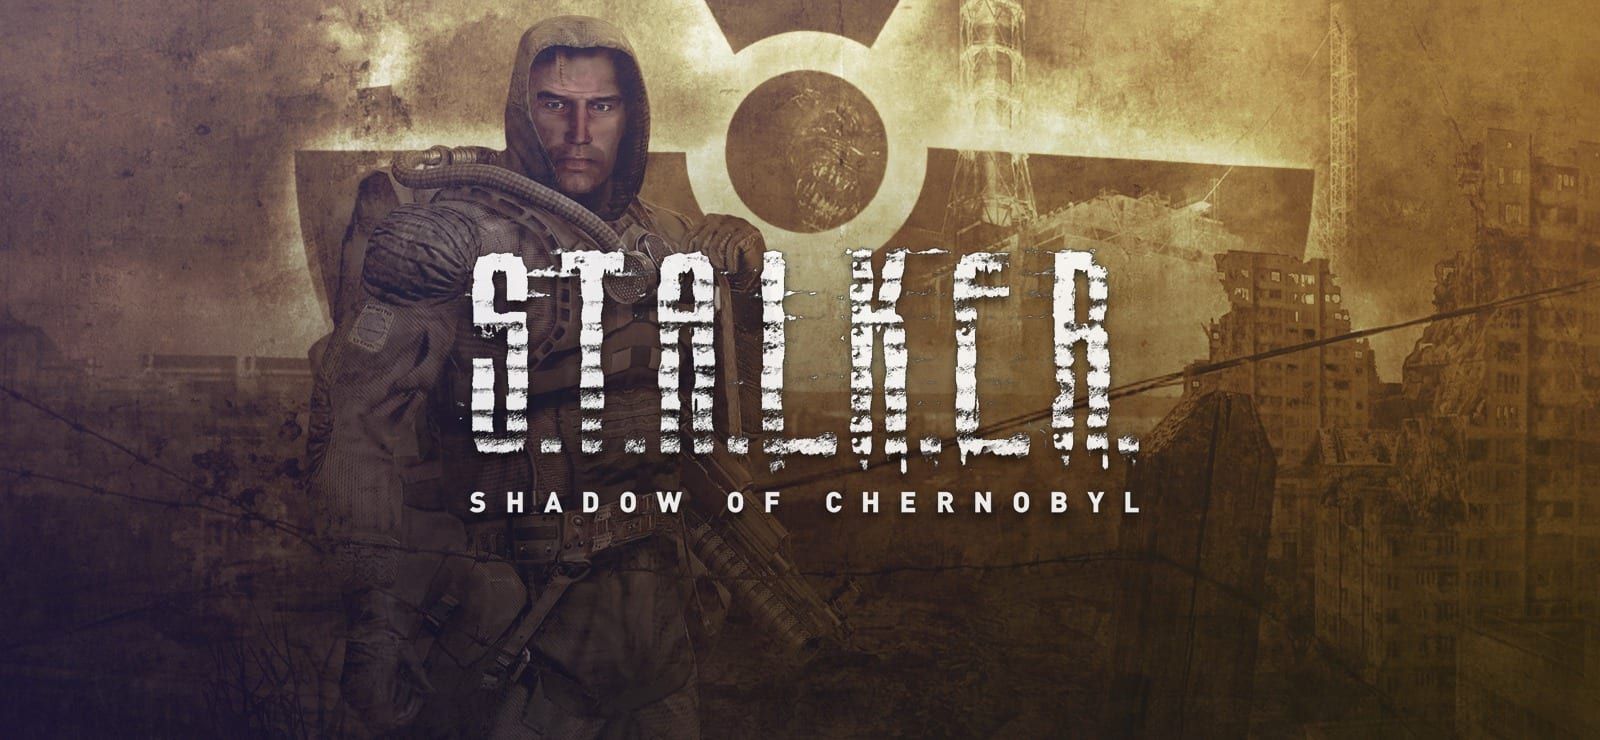 S.T.A.L.K.E.R.: Shadow Of Chernobyl varies-with-device